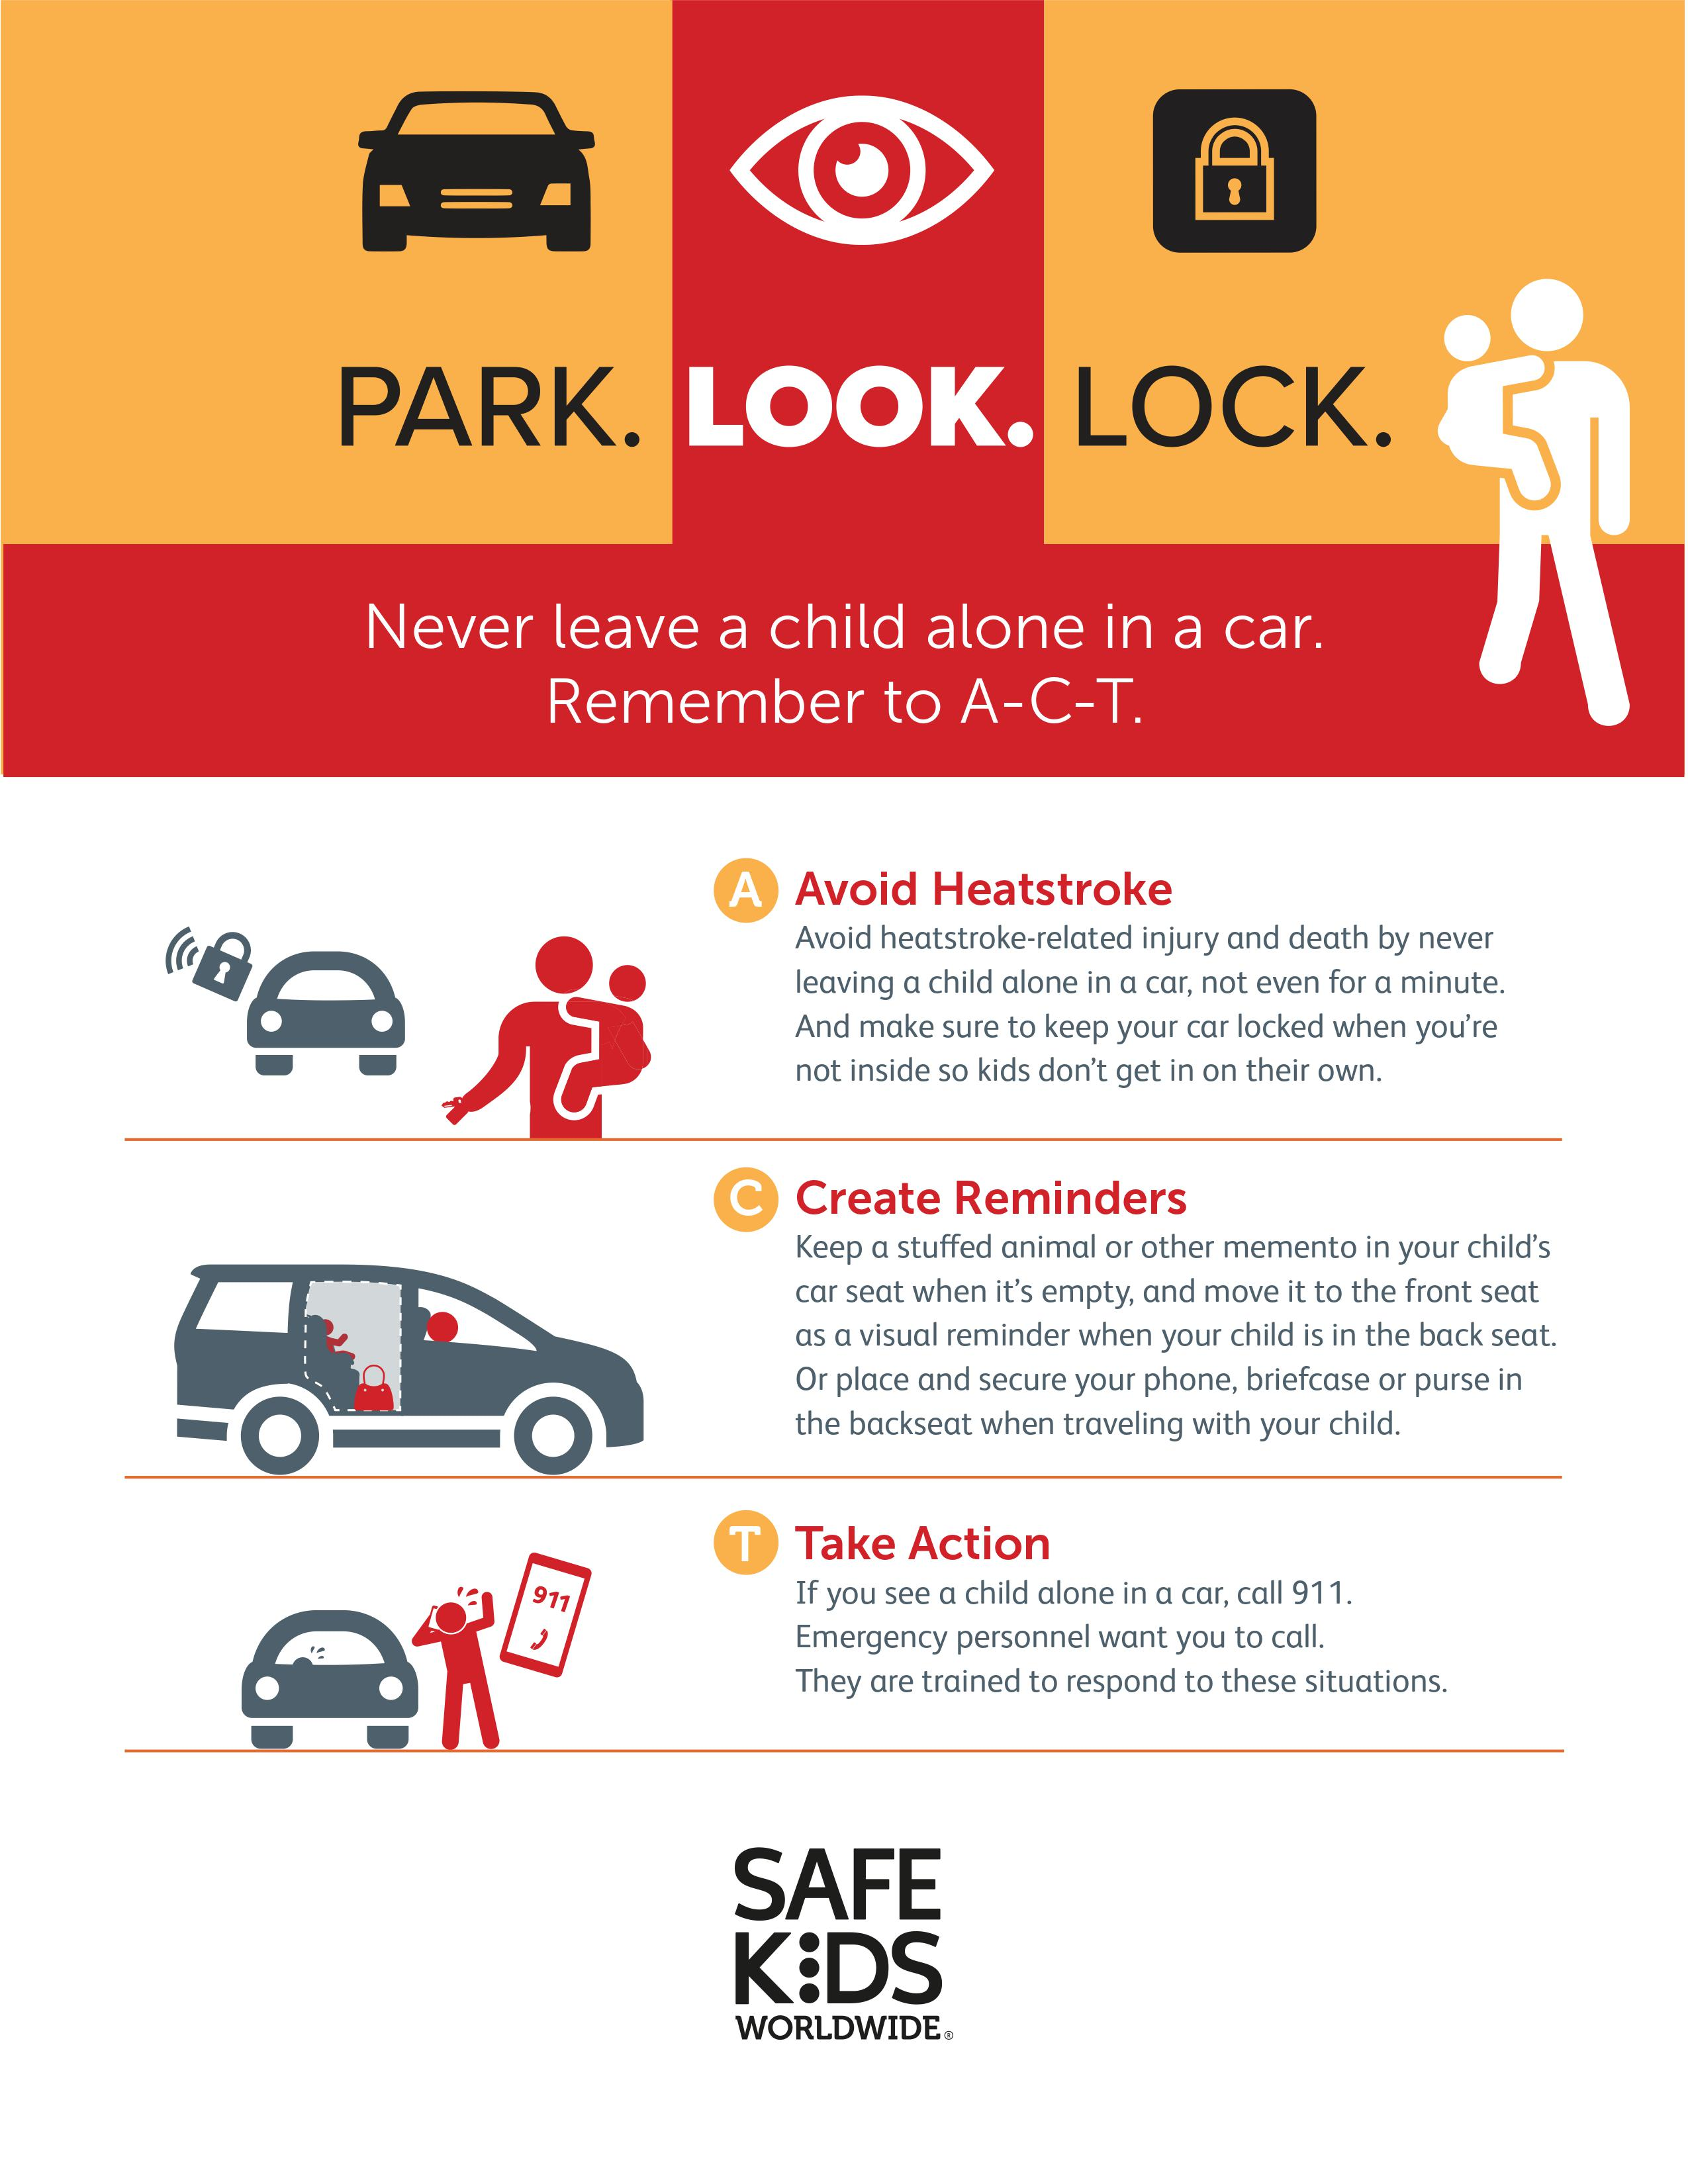 A heatstroke infographic illustrating tips on keeping kids safe from heatstroke in cars.